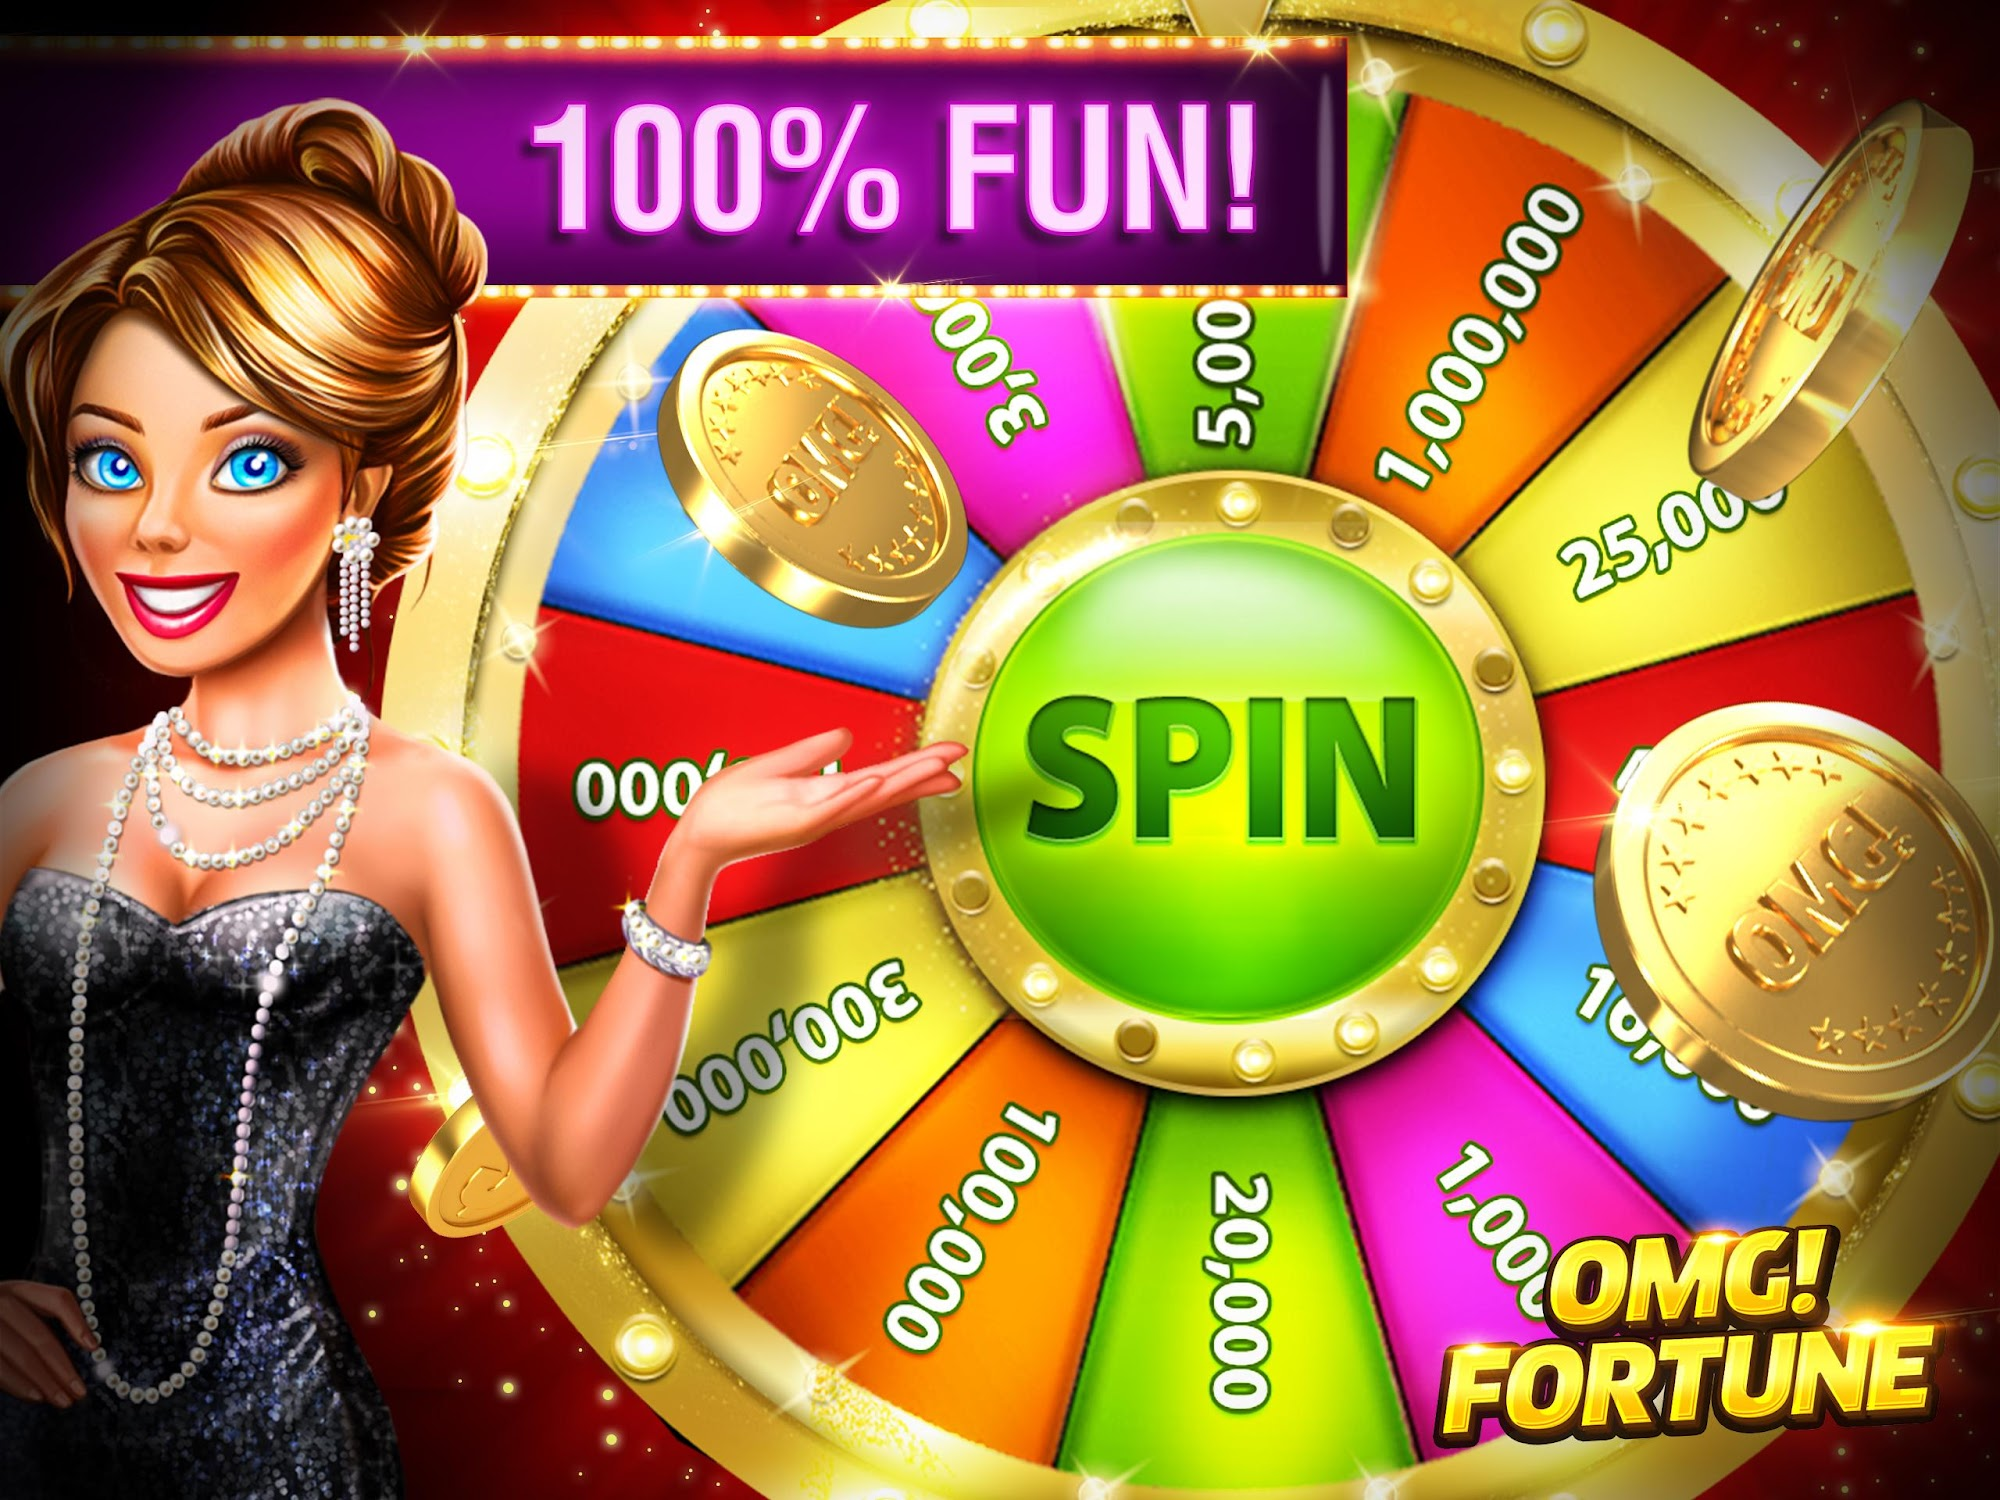 OMG! Fortune Free Slots Casino screenshot #9